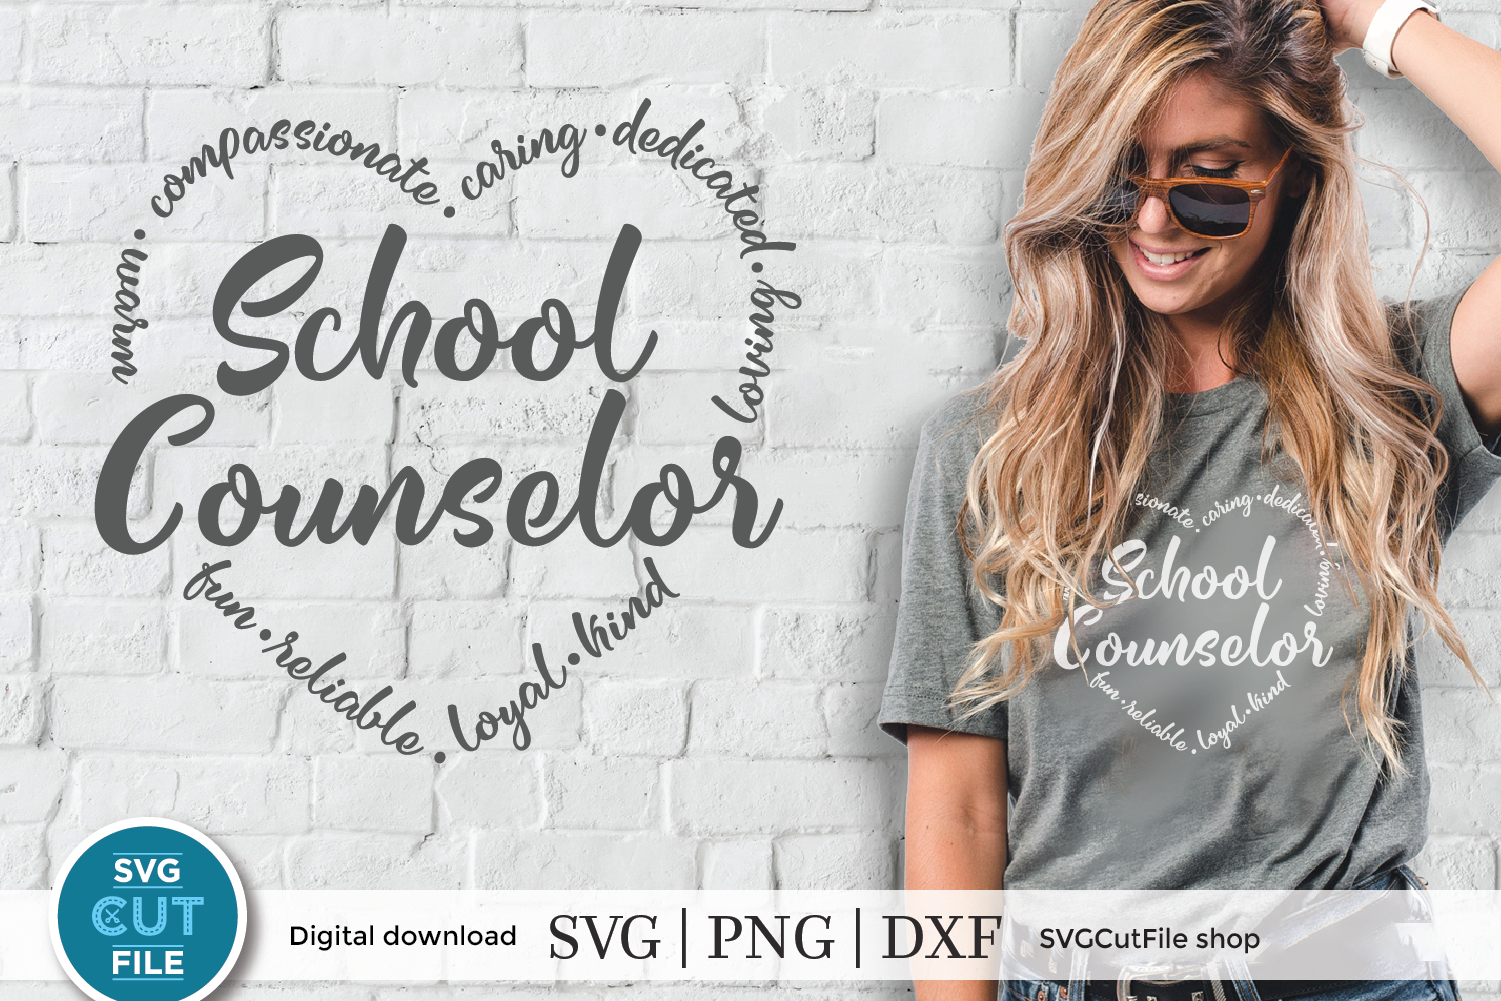 School Counselor SVG File